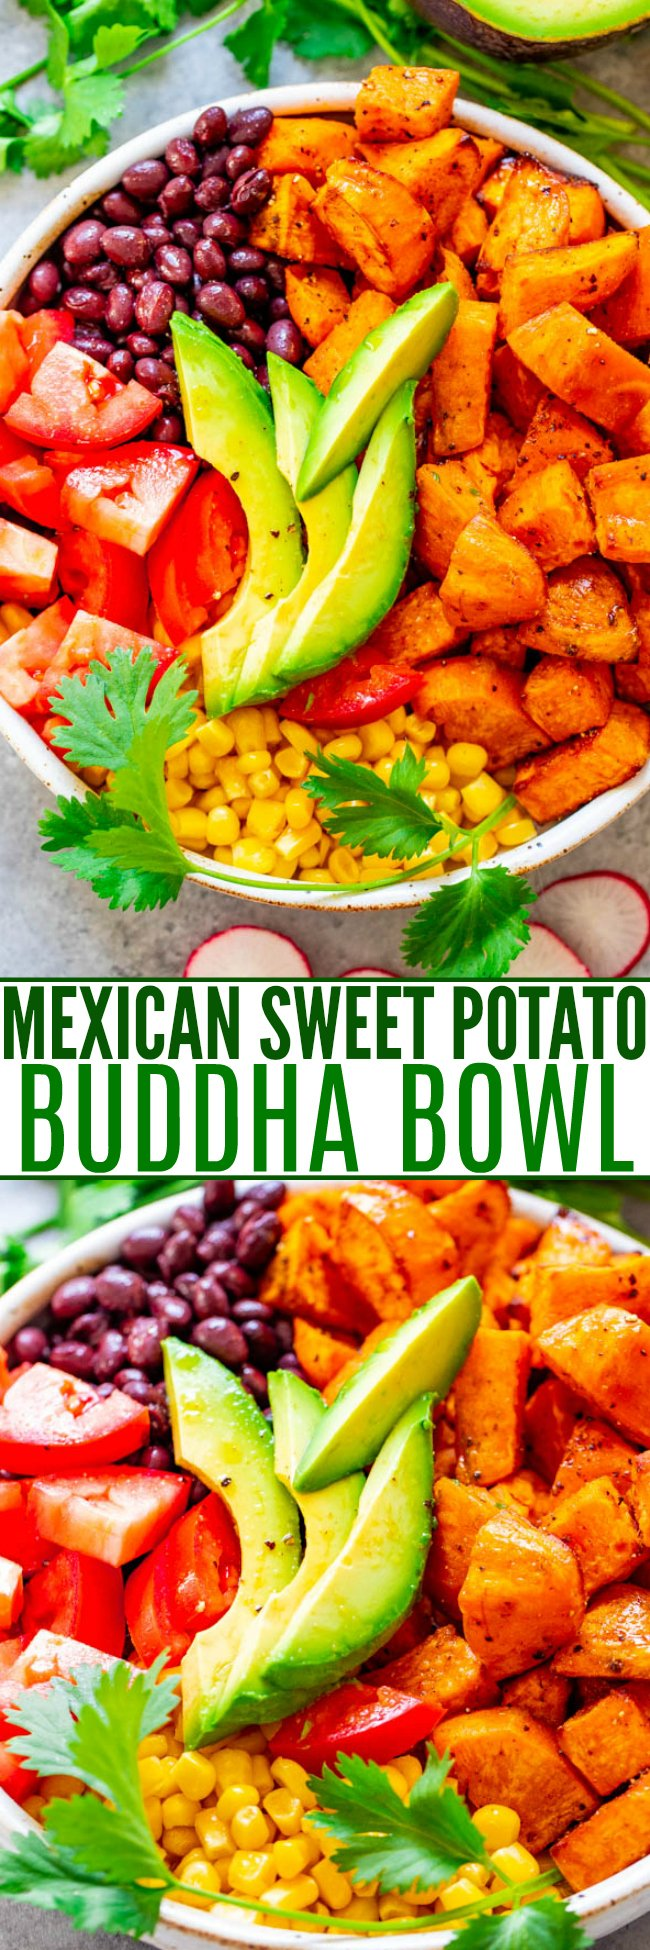 Mexican Sweet Potato and Black Bean Buddha Bowl - A HEALTHY and EASY alternative to a salad!! Loaded with Mexican-inspired ingredients and topped with a light lime-cumin vinaigrette! Ready in 20 minutes and perfect for MEAL PREPPING!!